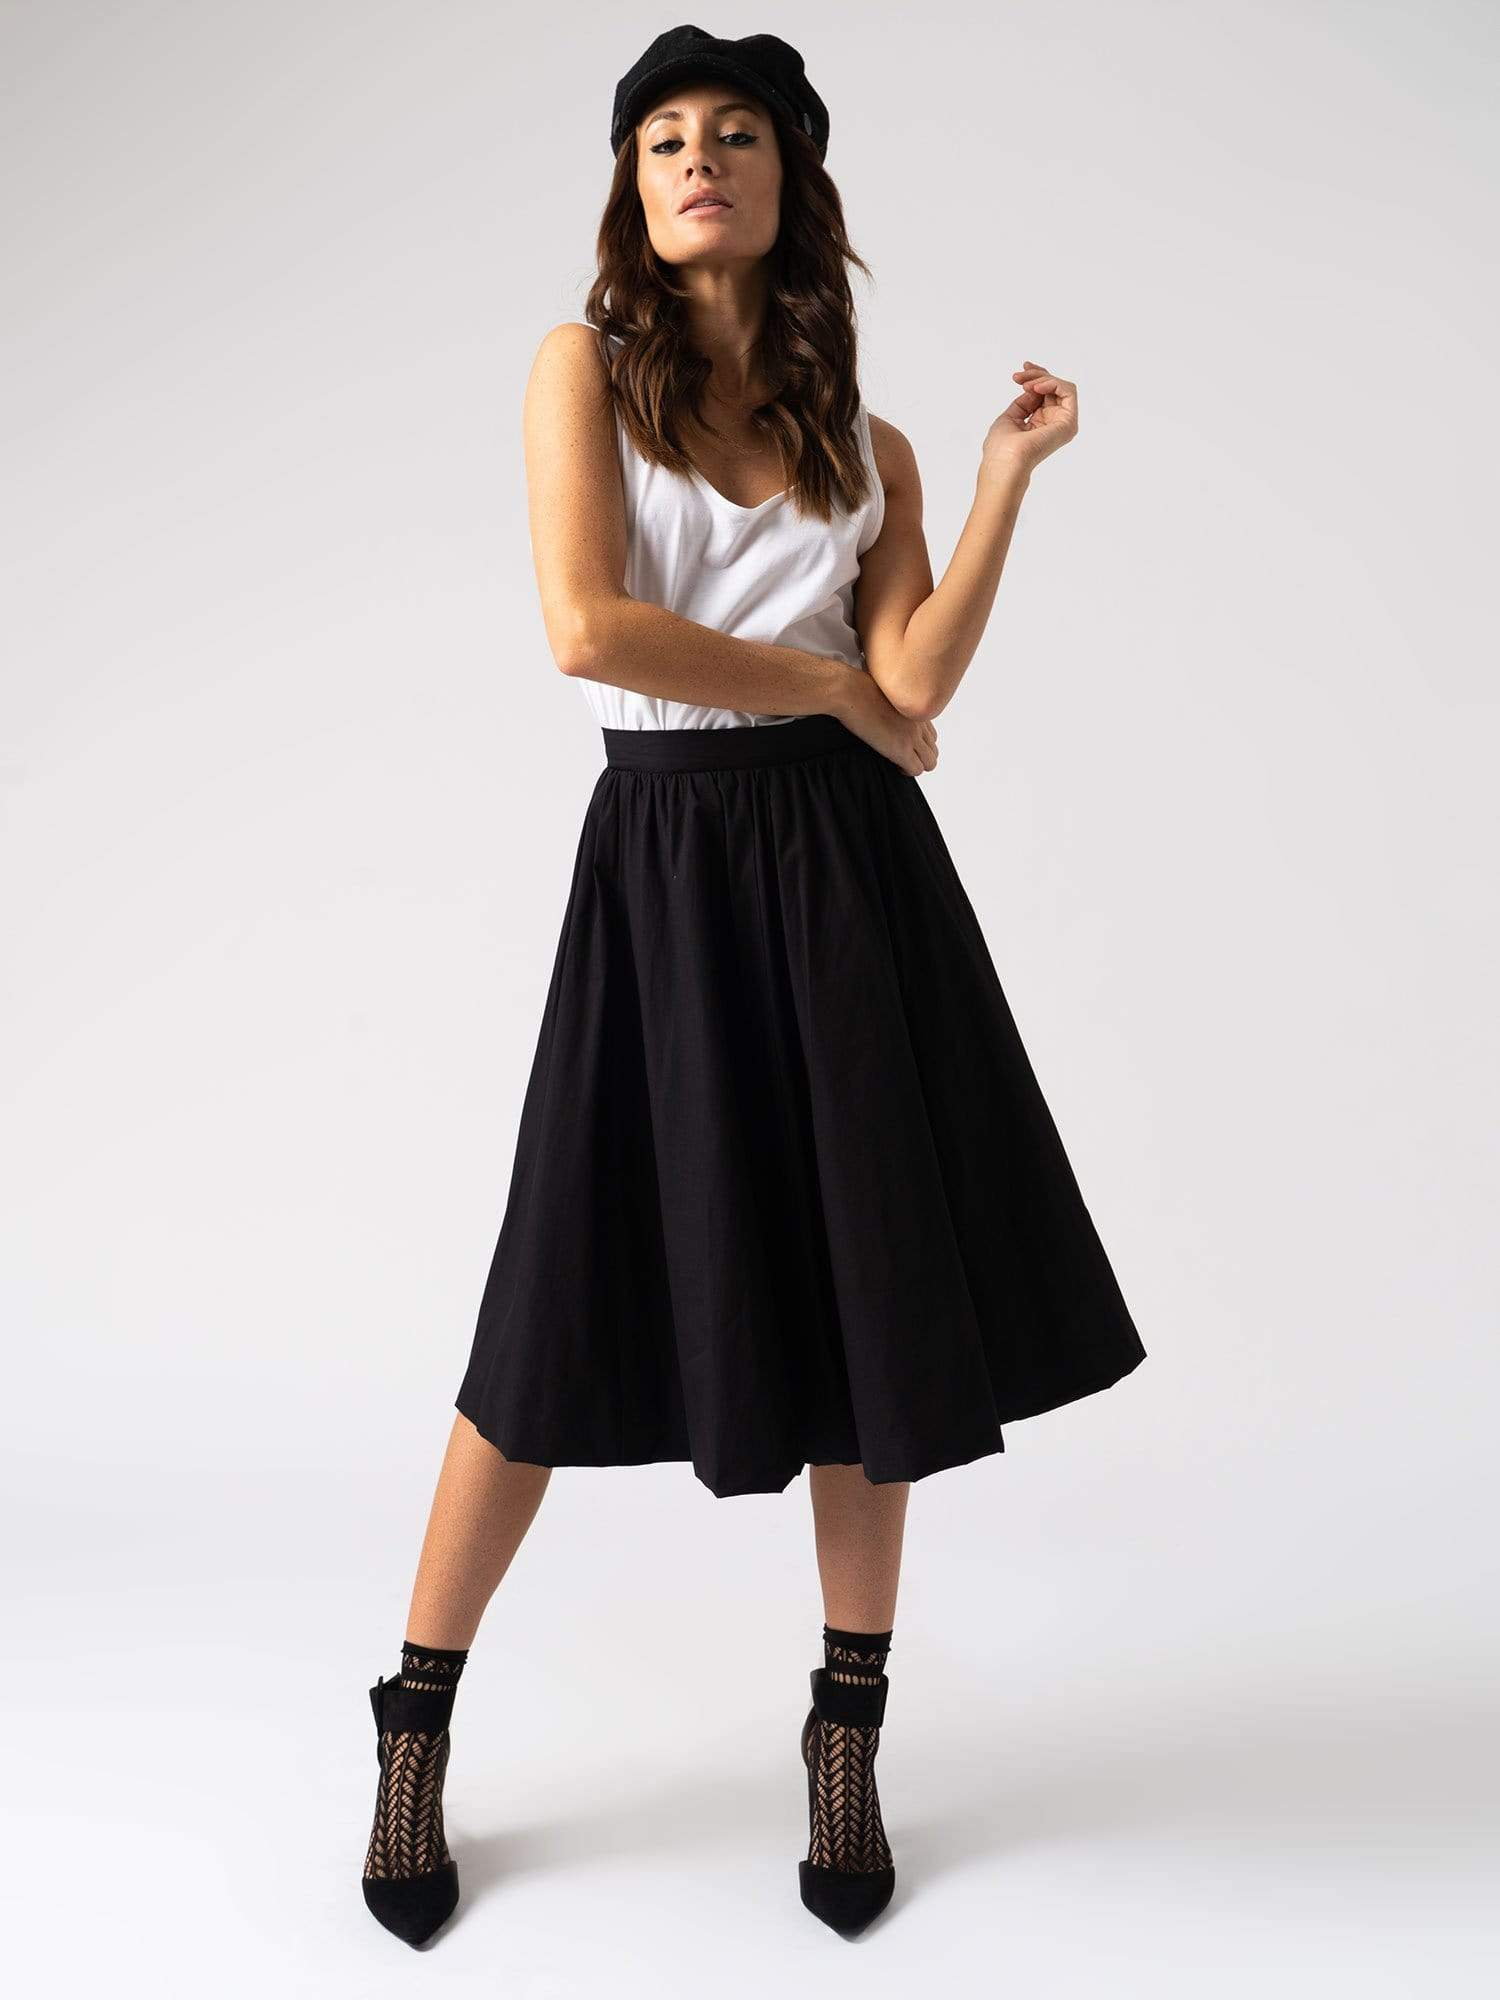 Biarritz Skirt Black